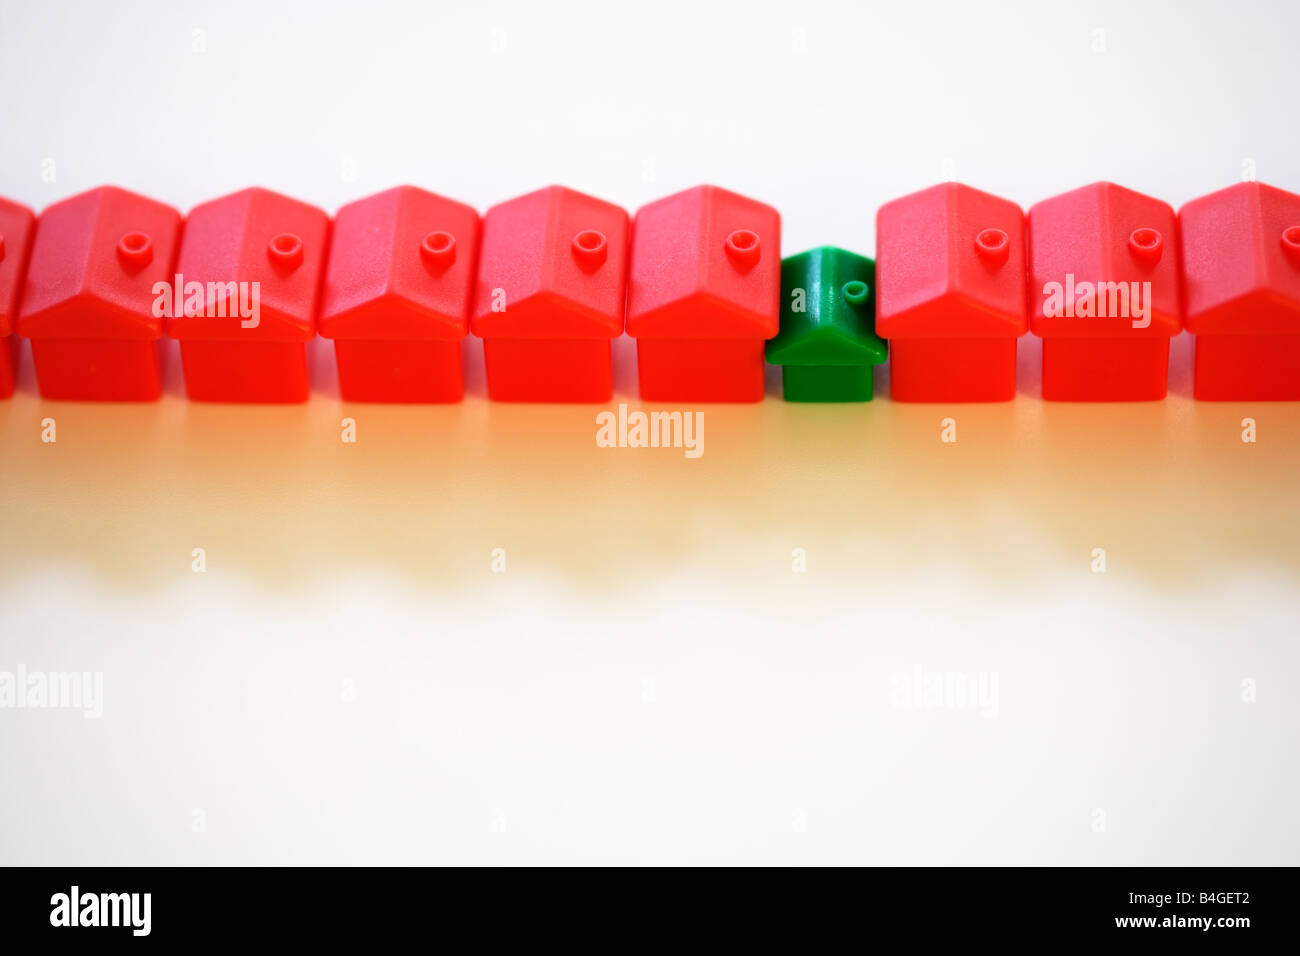 Row Of Monopoly Hotels And Green House Stock Photo 20031874 Alamy